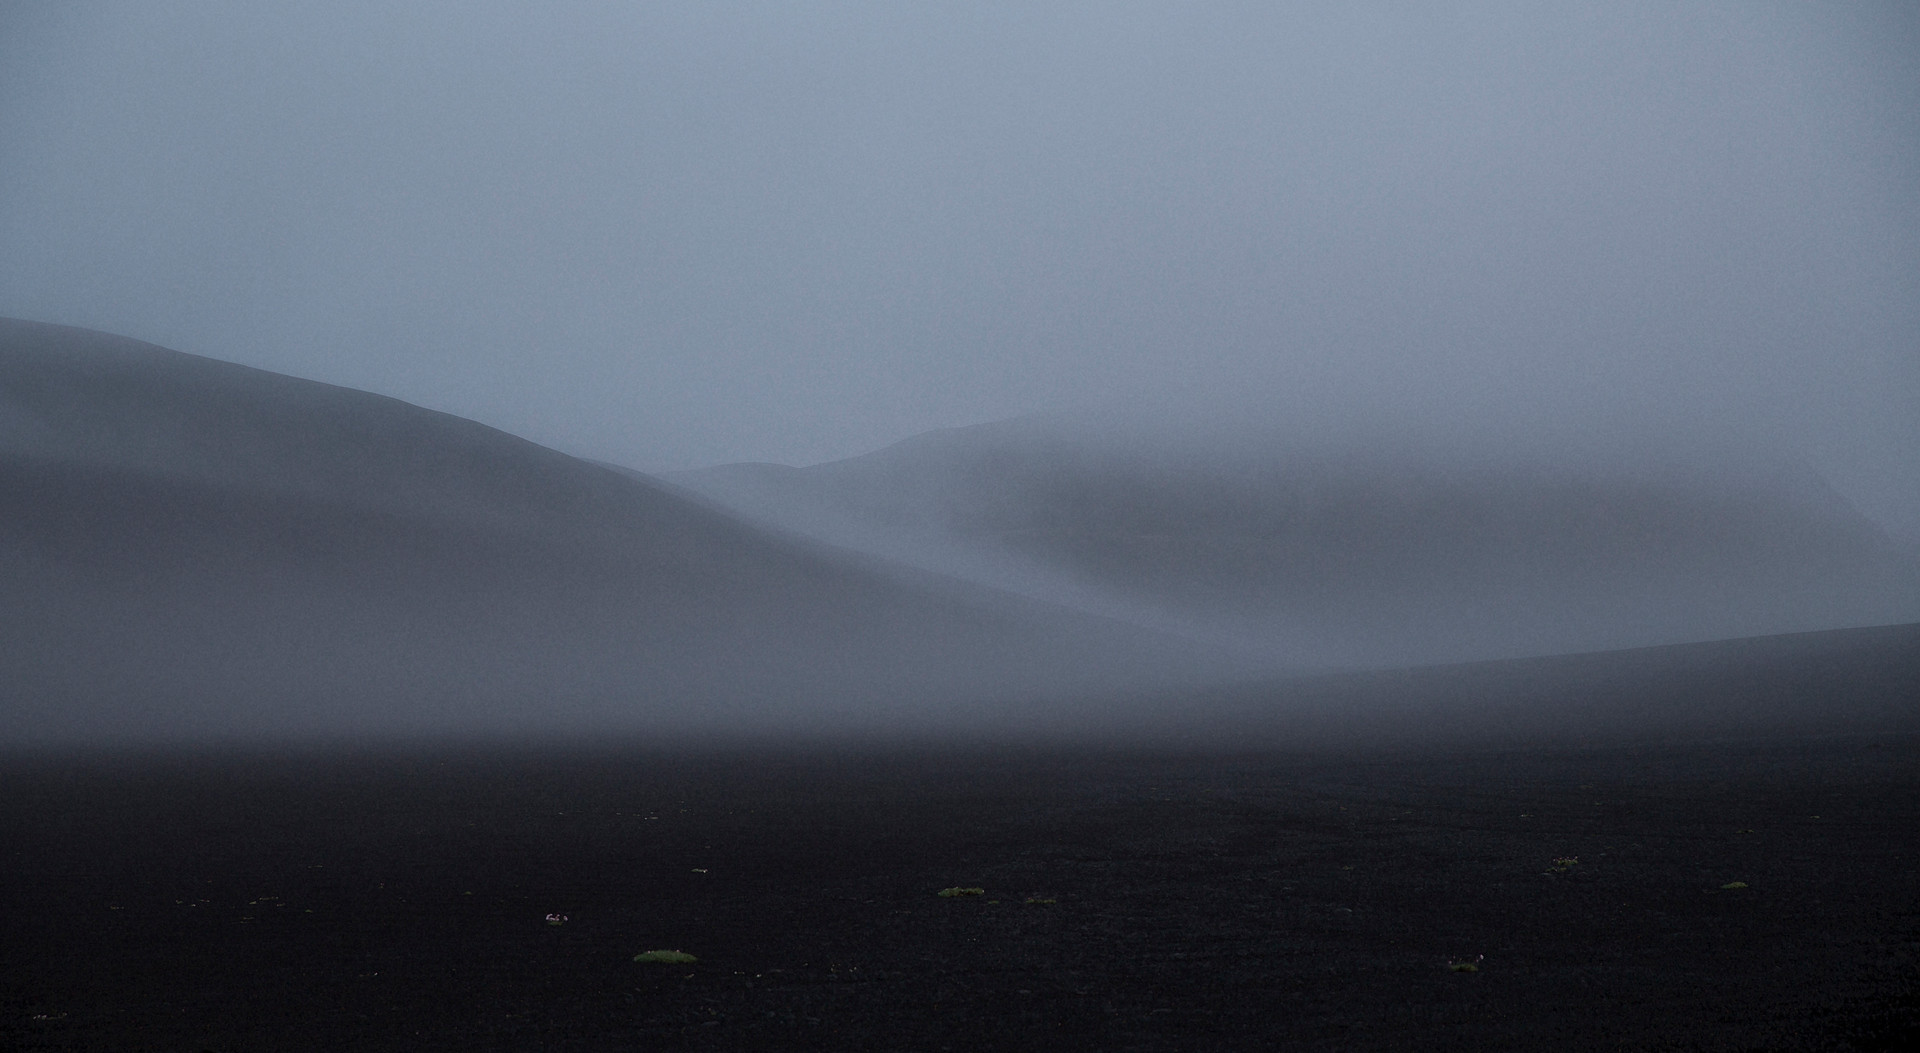 Iceland+Night+Fog.jpg